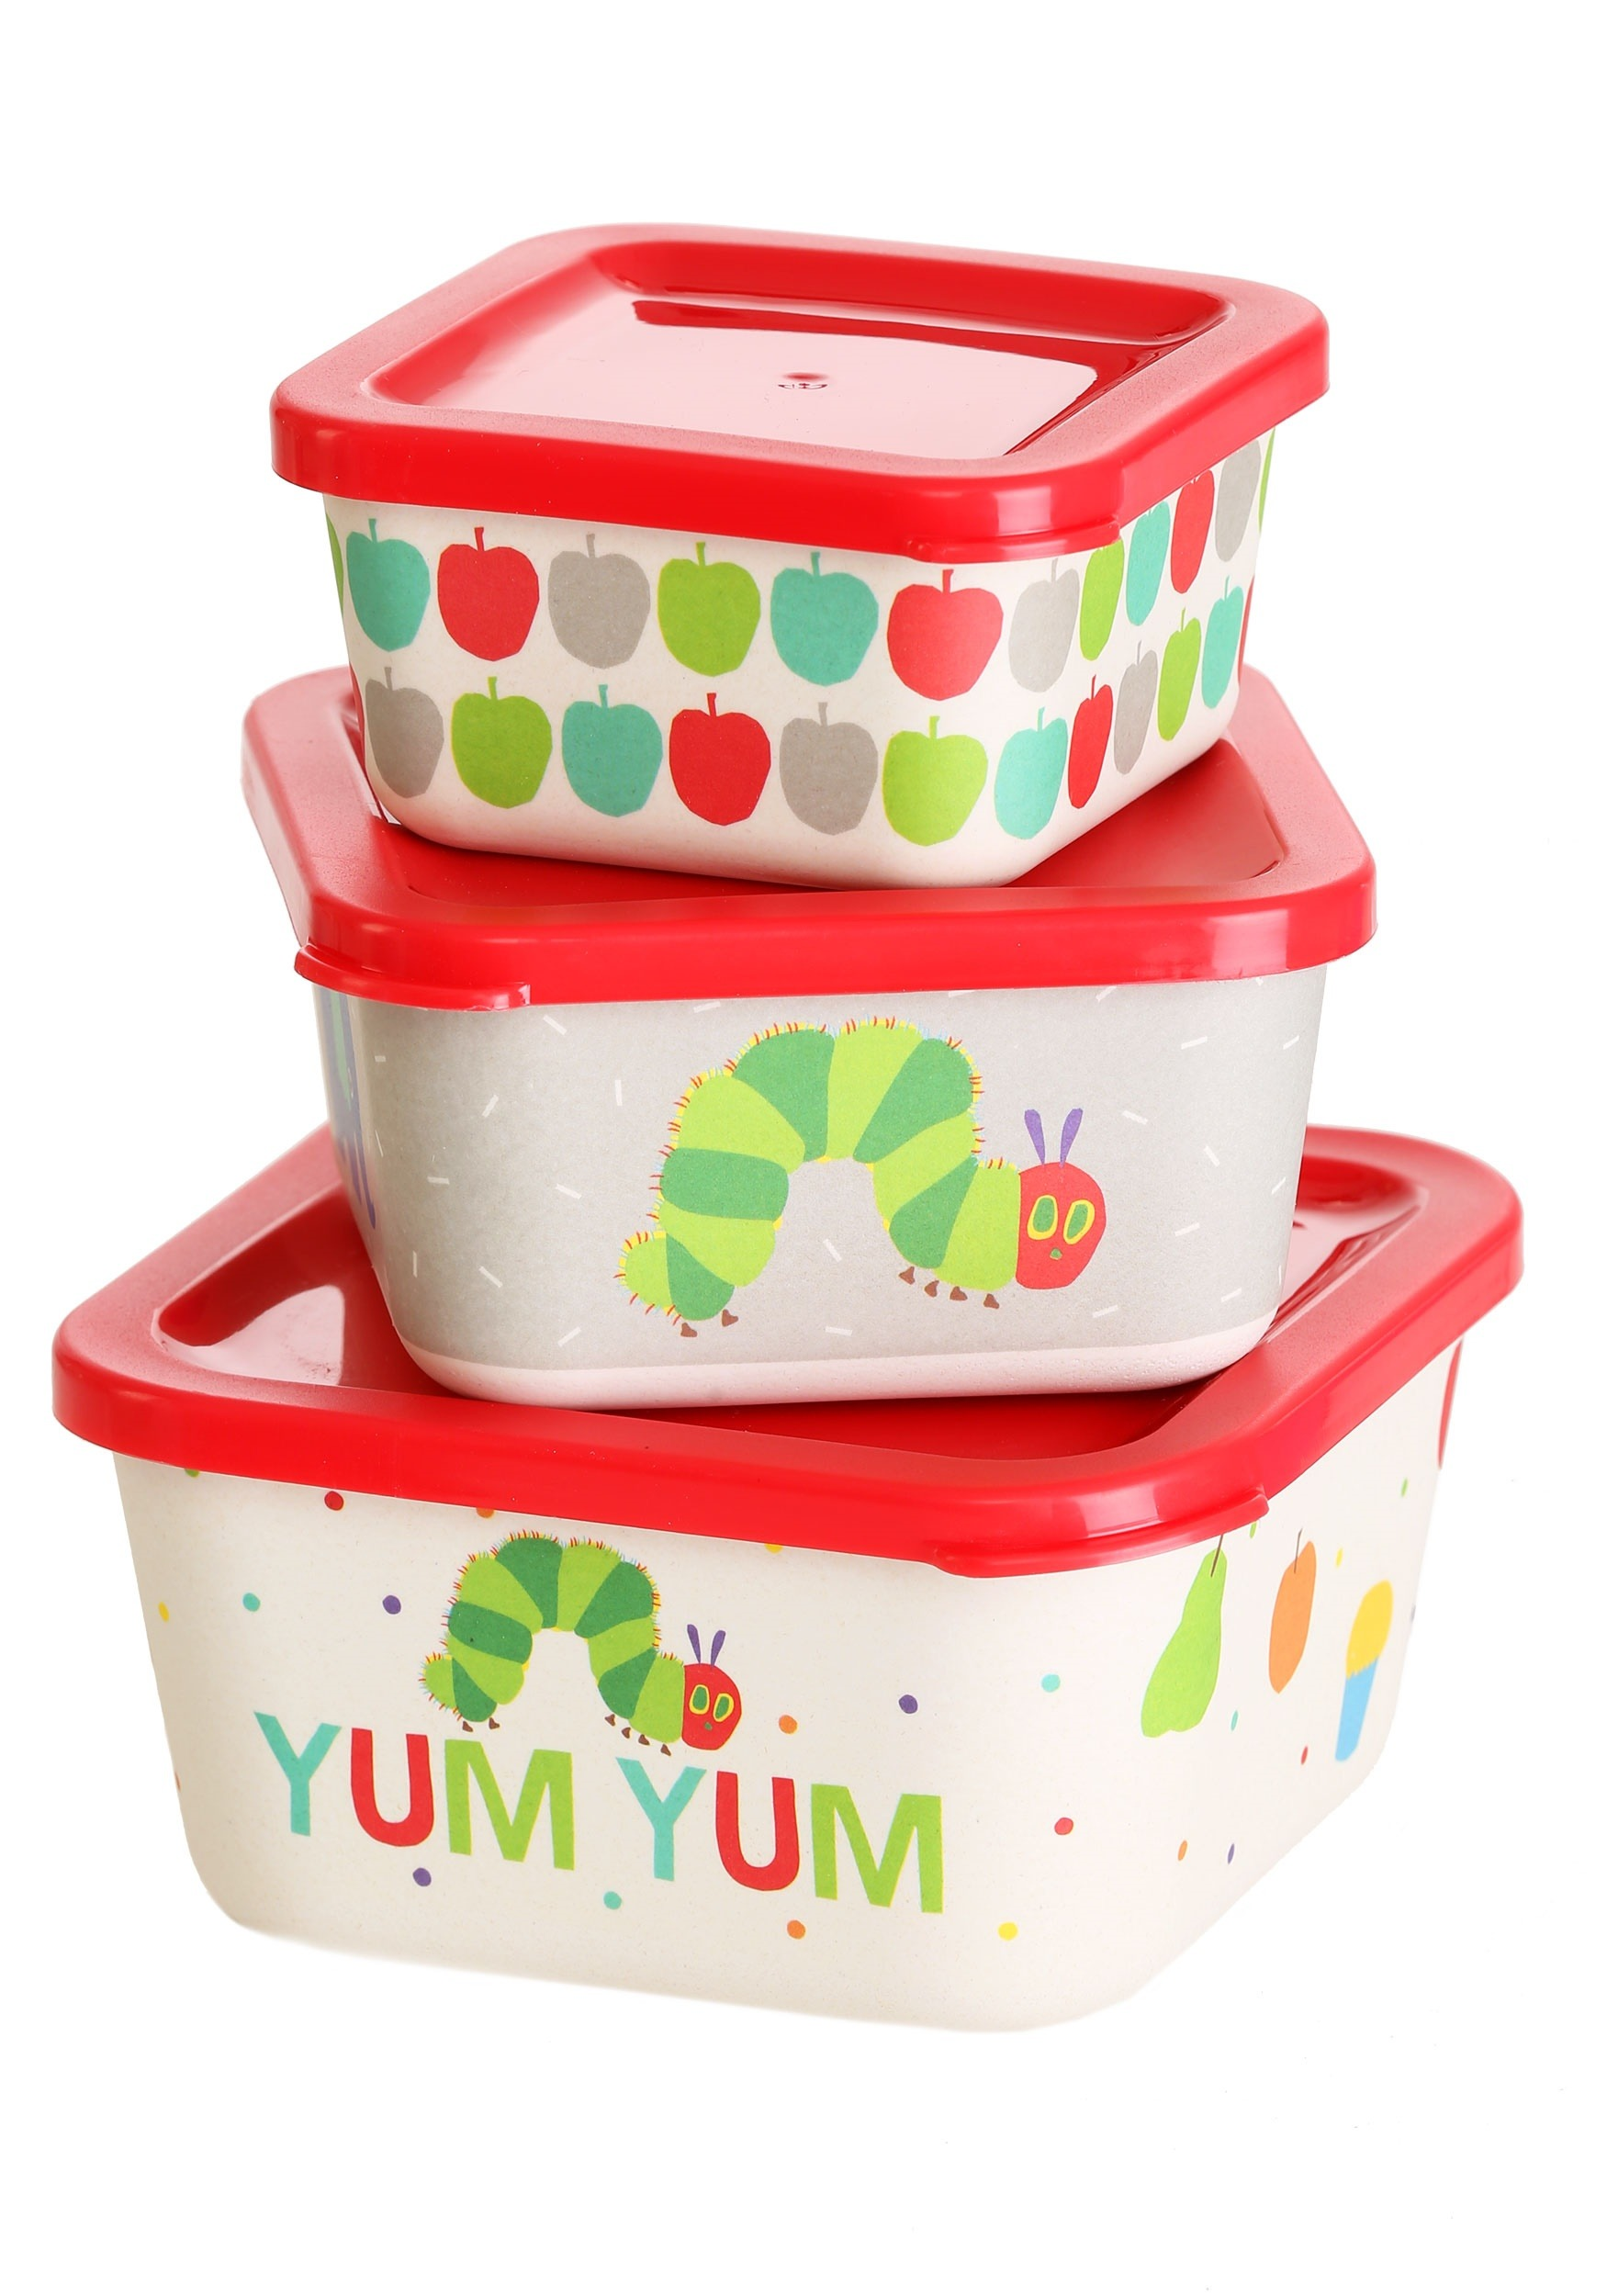 The World of Eric Carle Childrens Nesting Food Containers